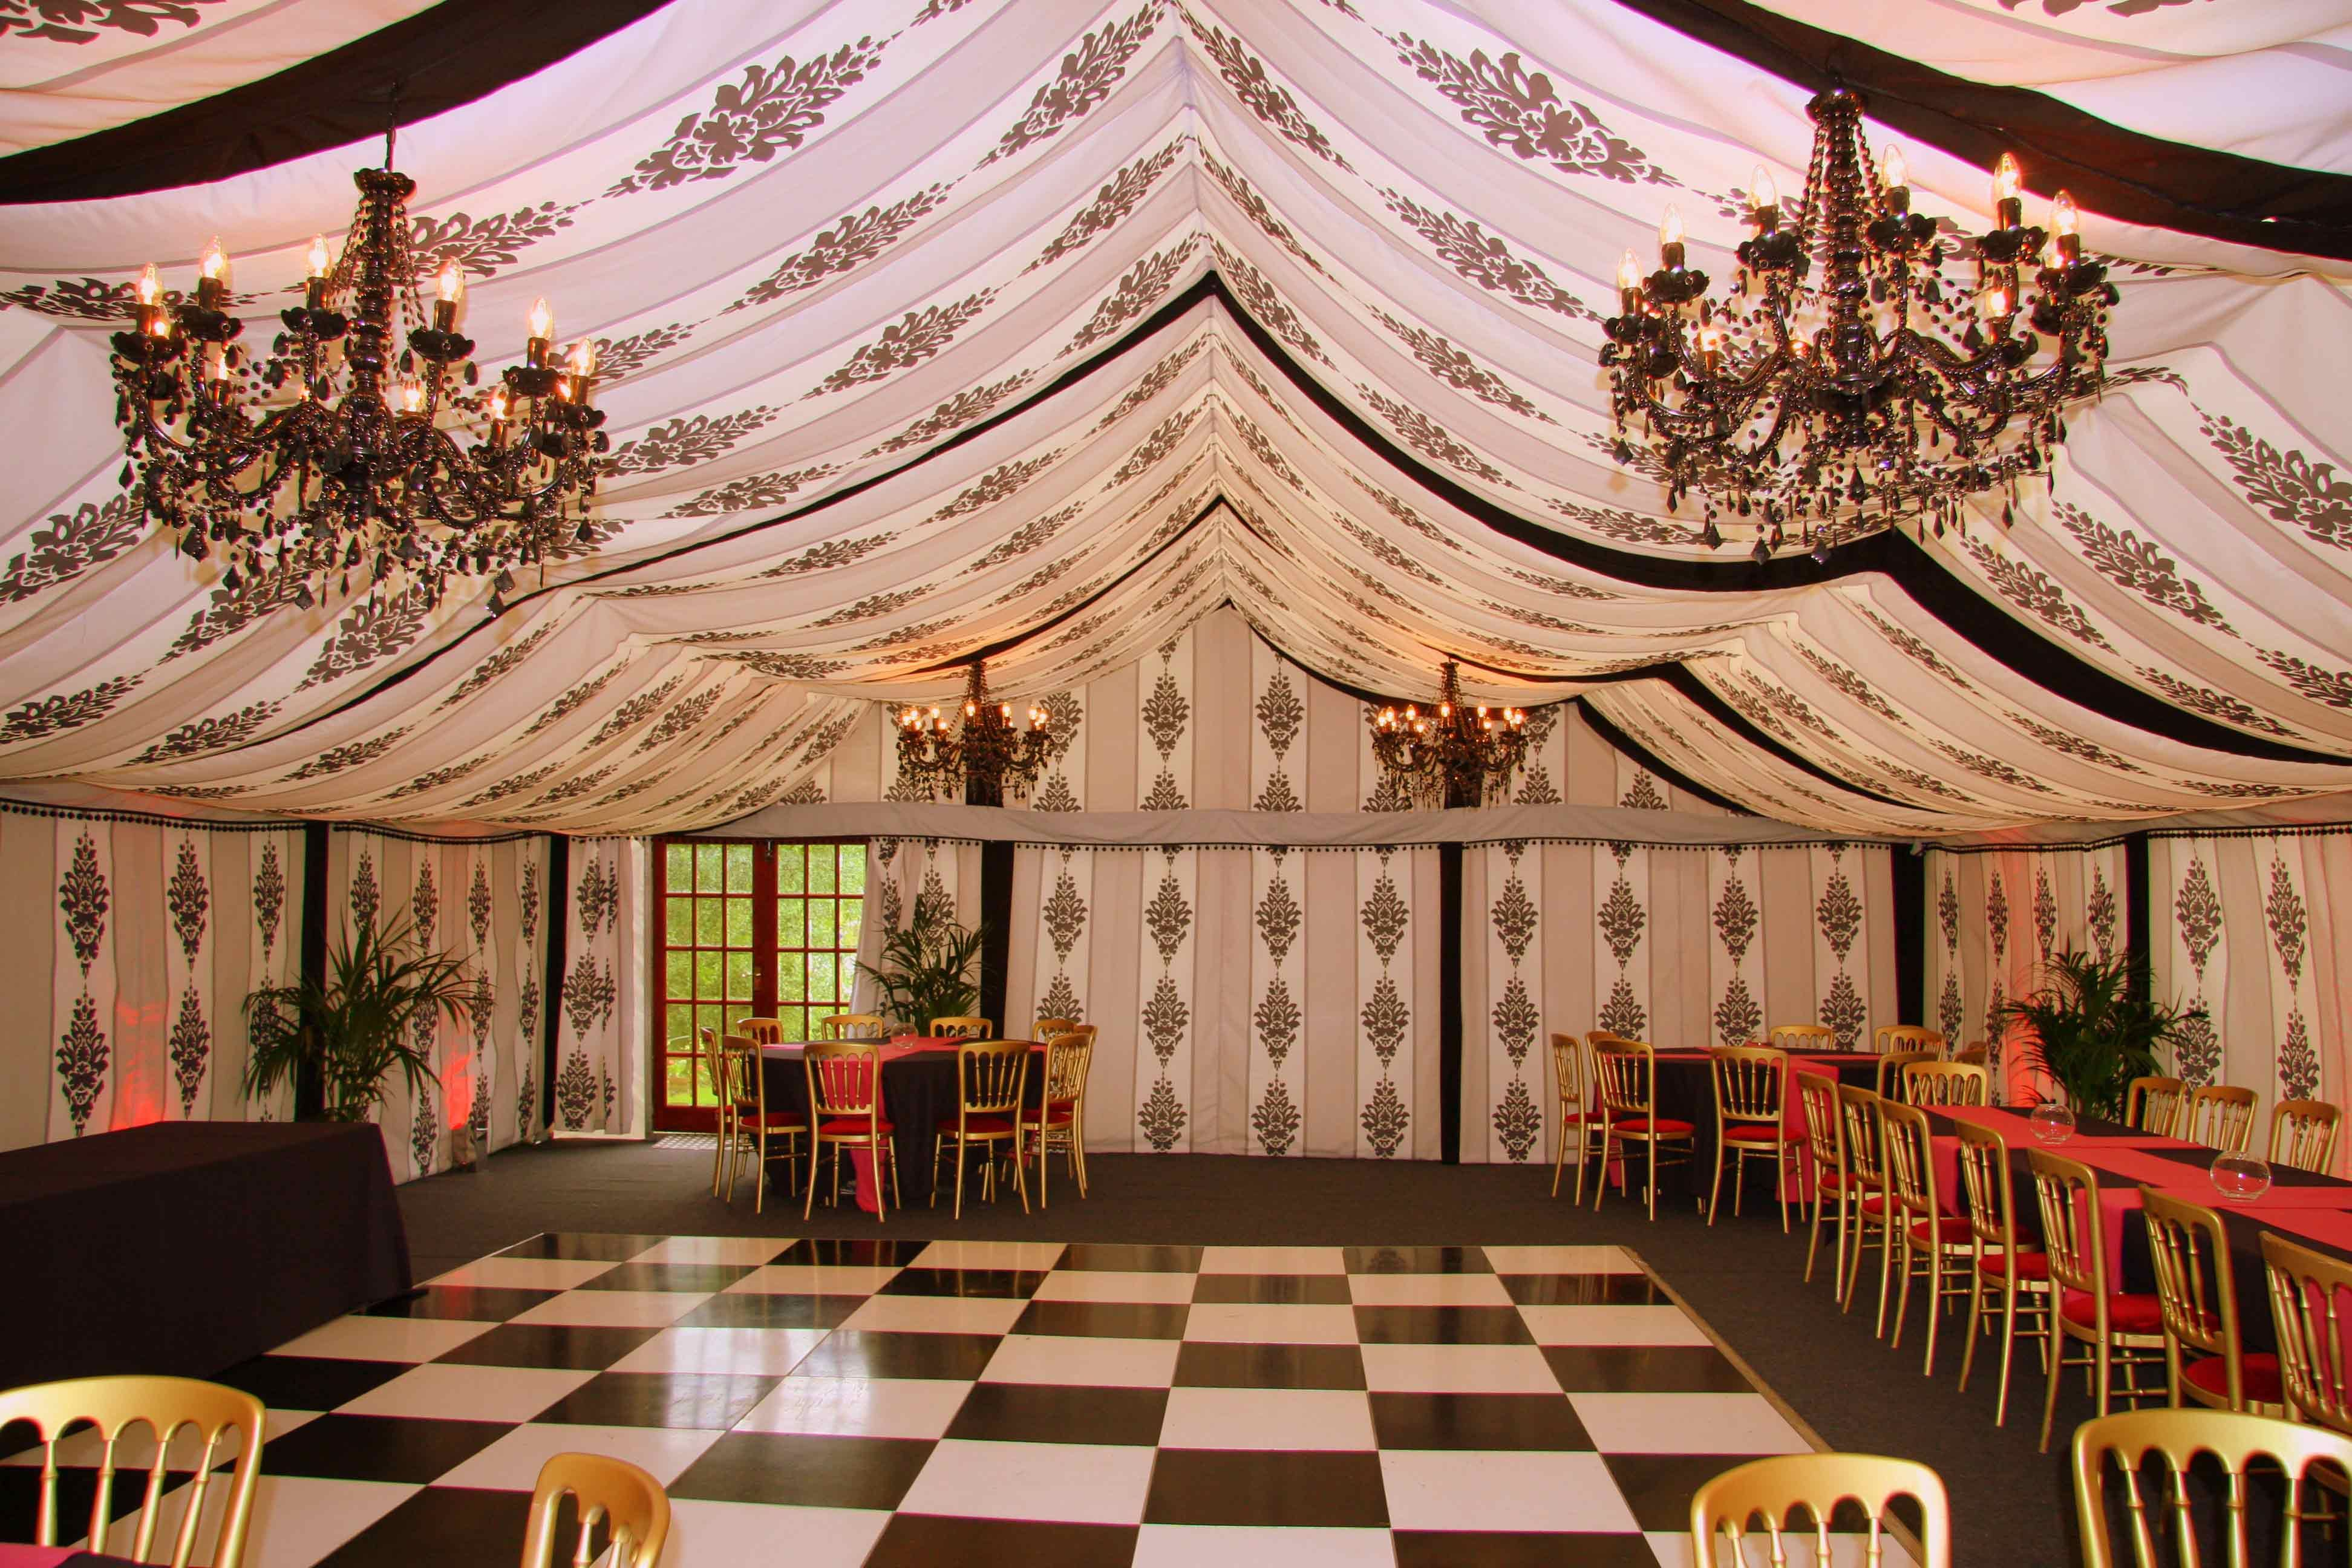 Wedding marquee decoration ideas  Image detail for Themed Marquees  Marquee Tent Hire Wedding